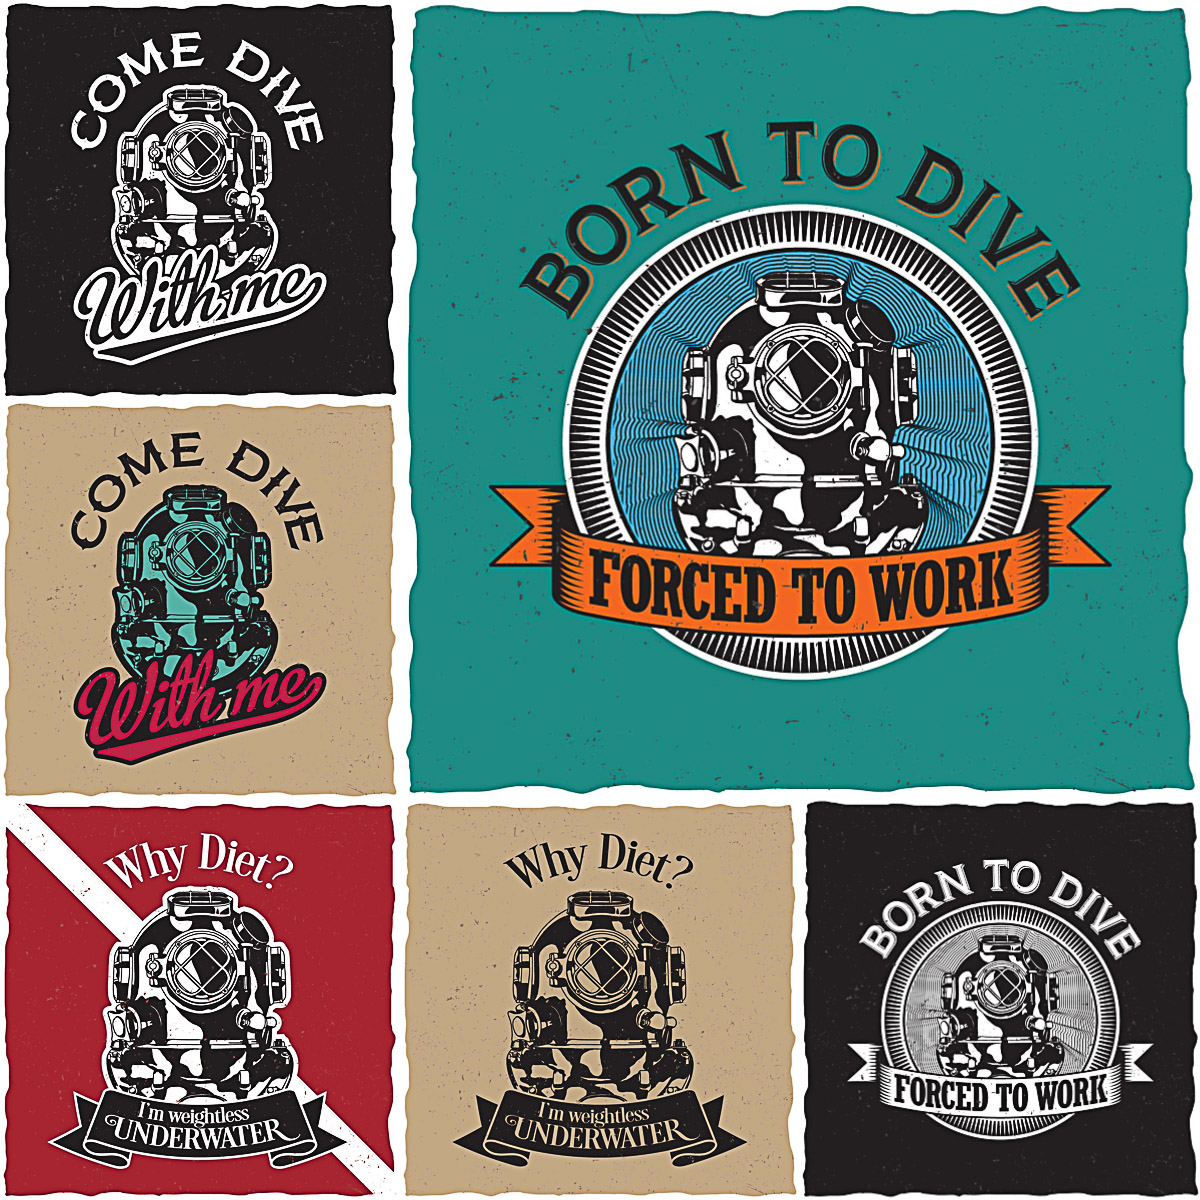 Diver t shirt labels design print free download for T shirt printing design online